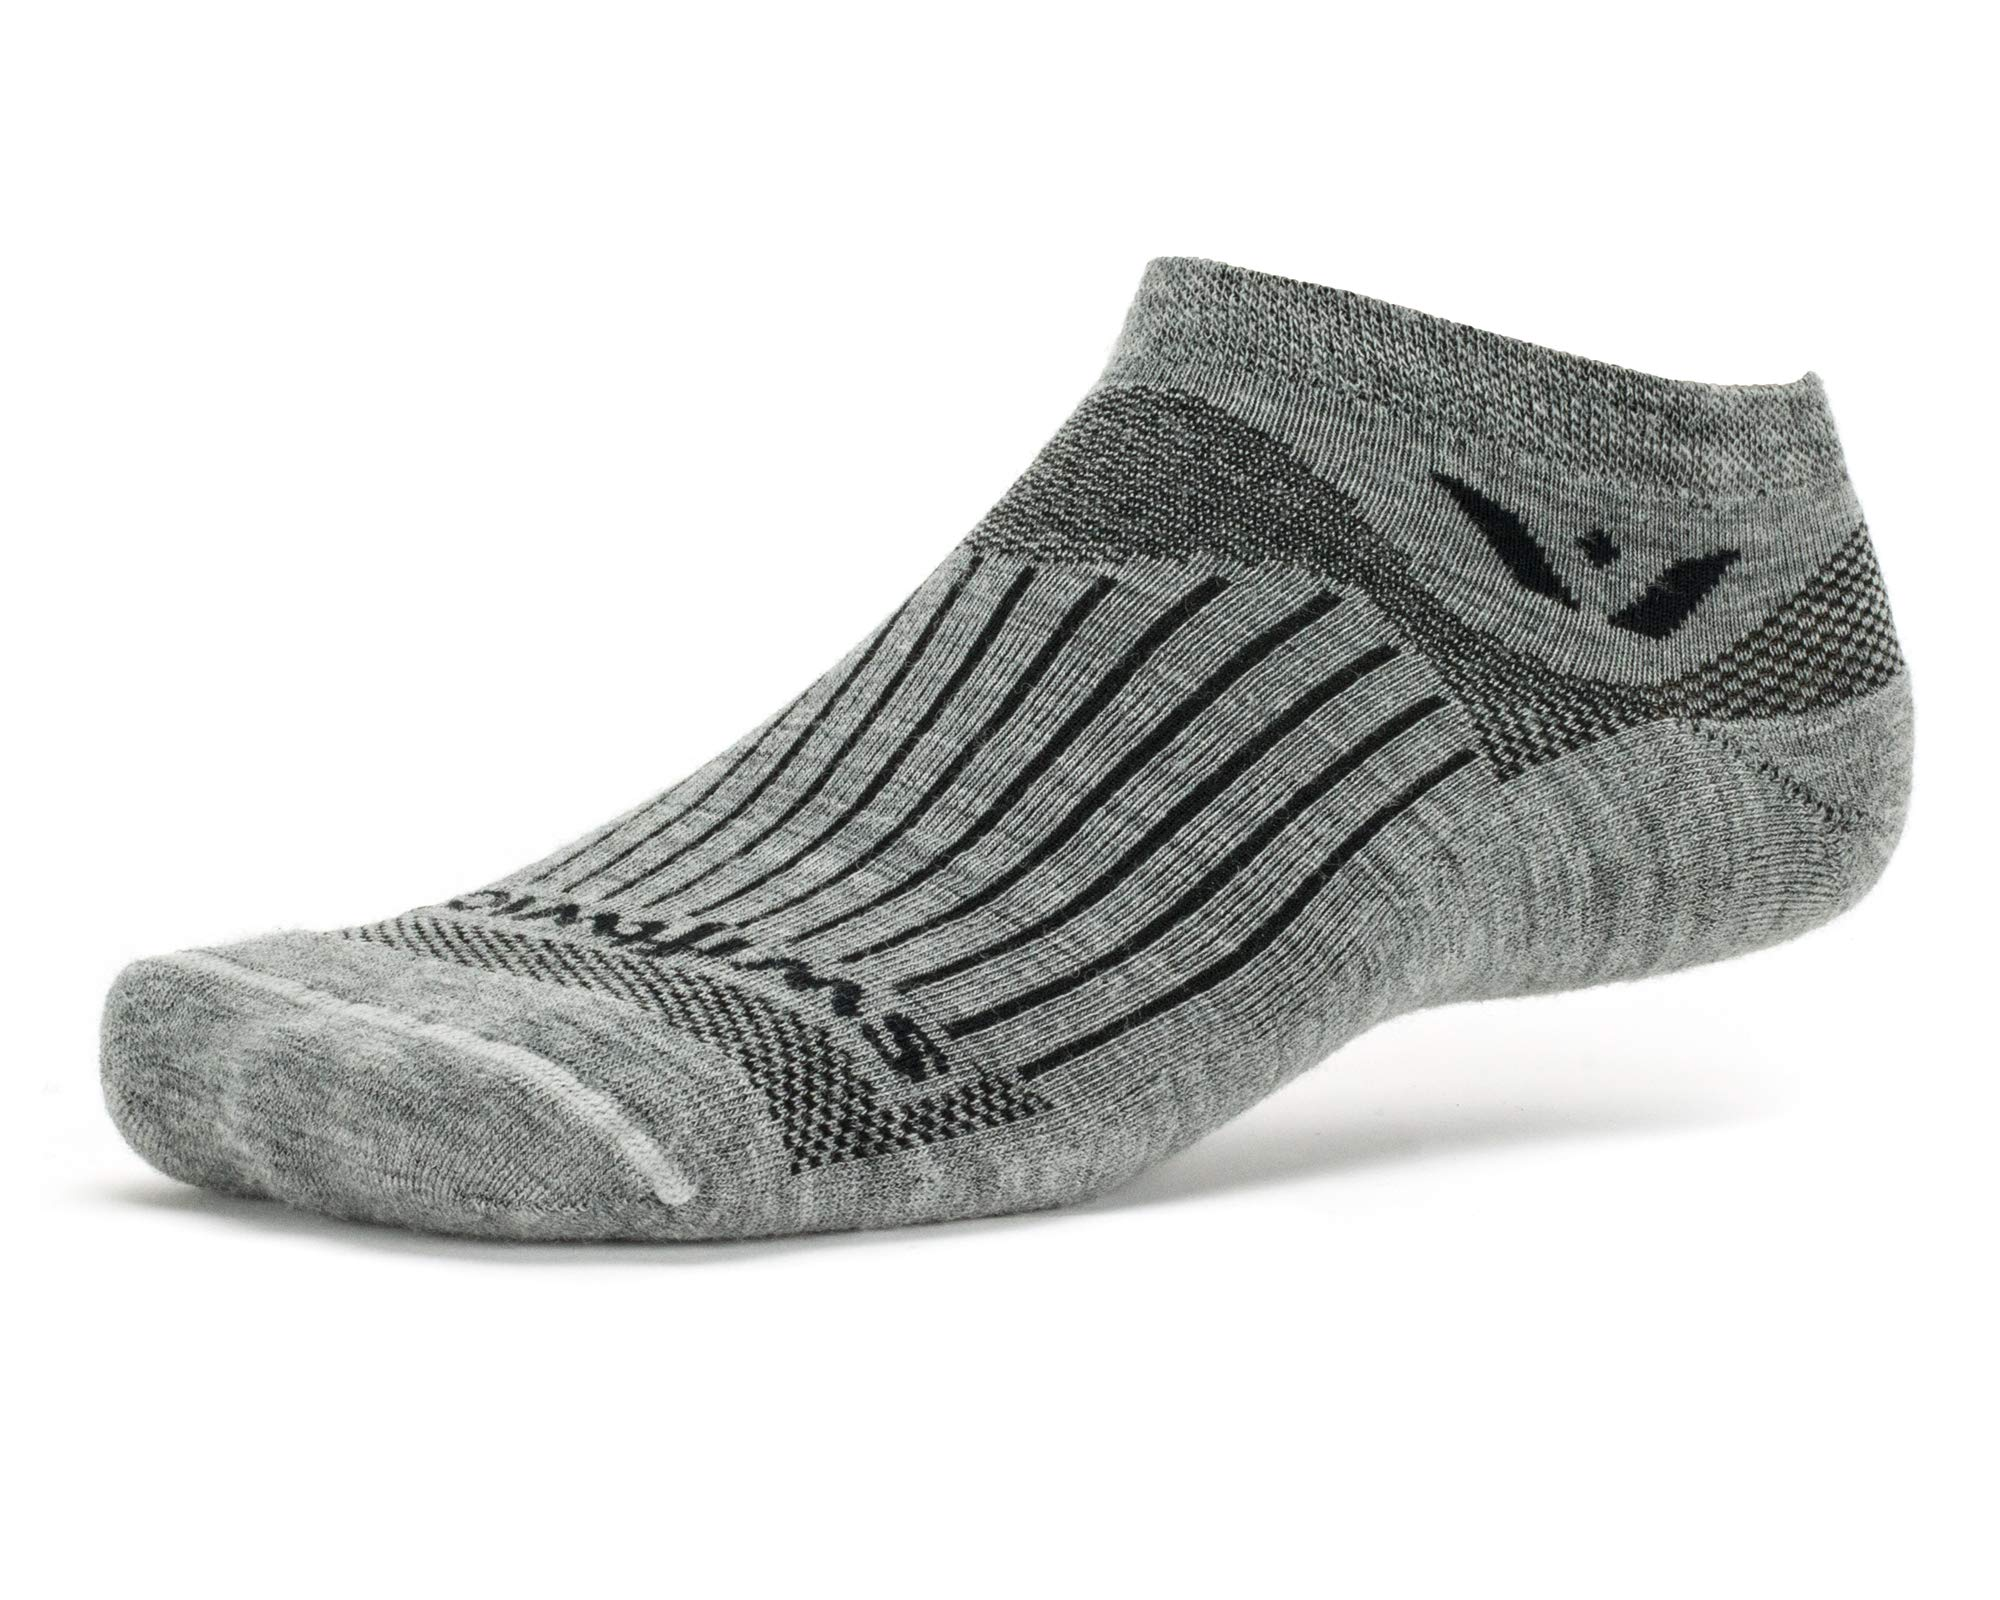 Walking Swiftwick- VIBE ZERO Fast Dry Lightweight Cushioned Socks Built for Trail Running All Day Comfort No Show